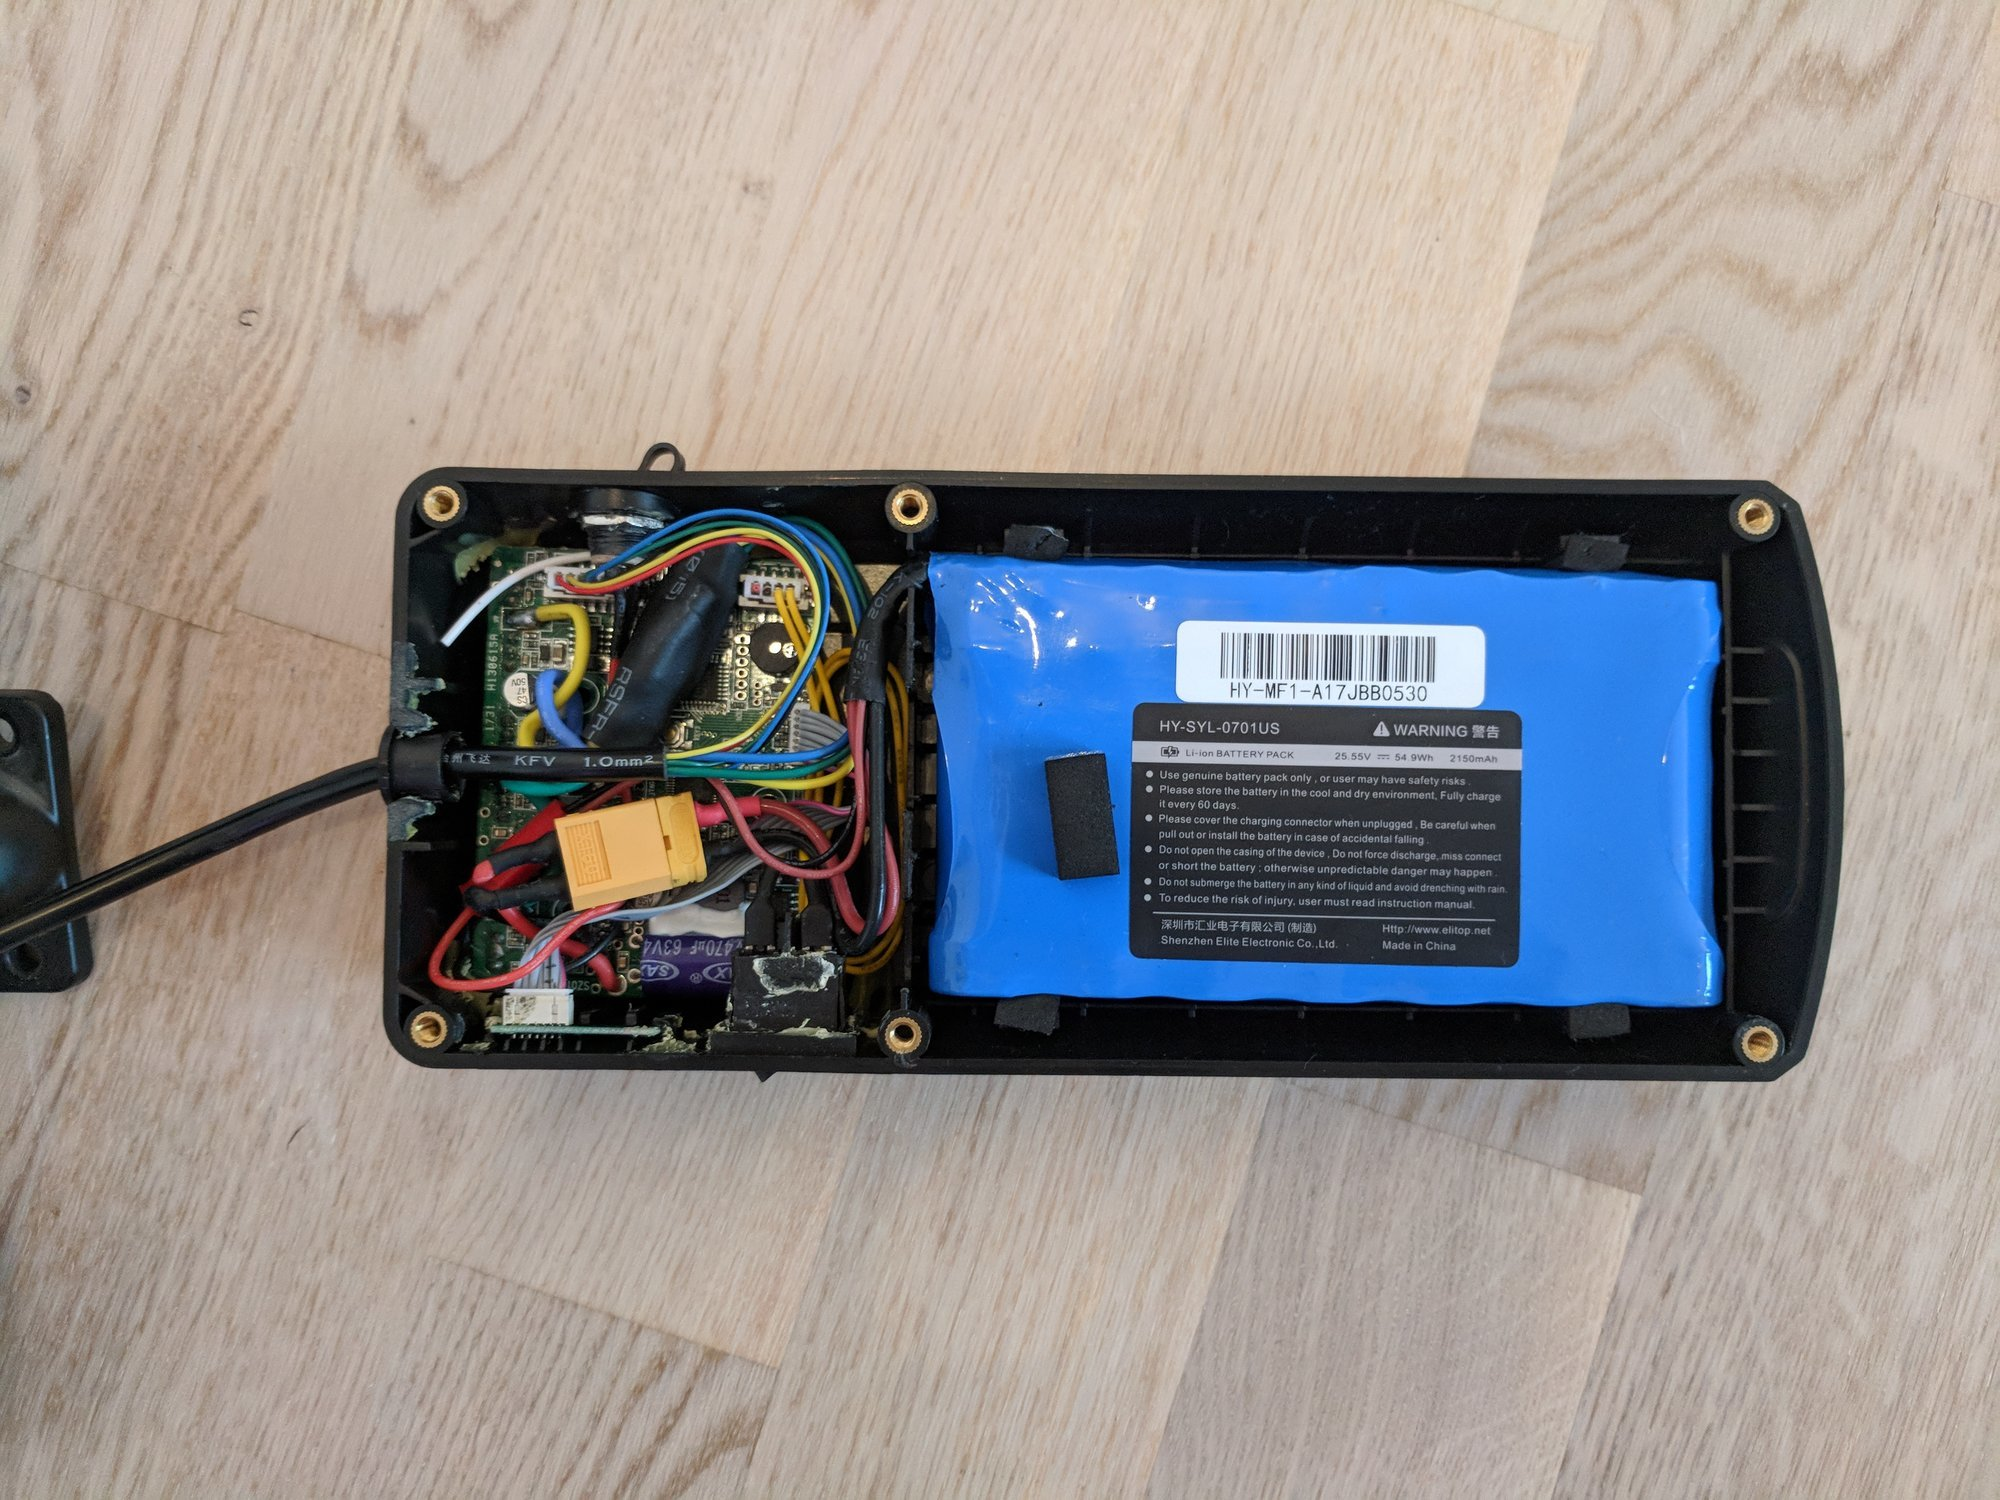 Detail view of the complete electronics with battery pack in the enclosing